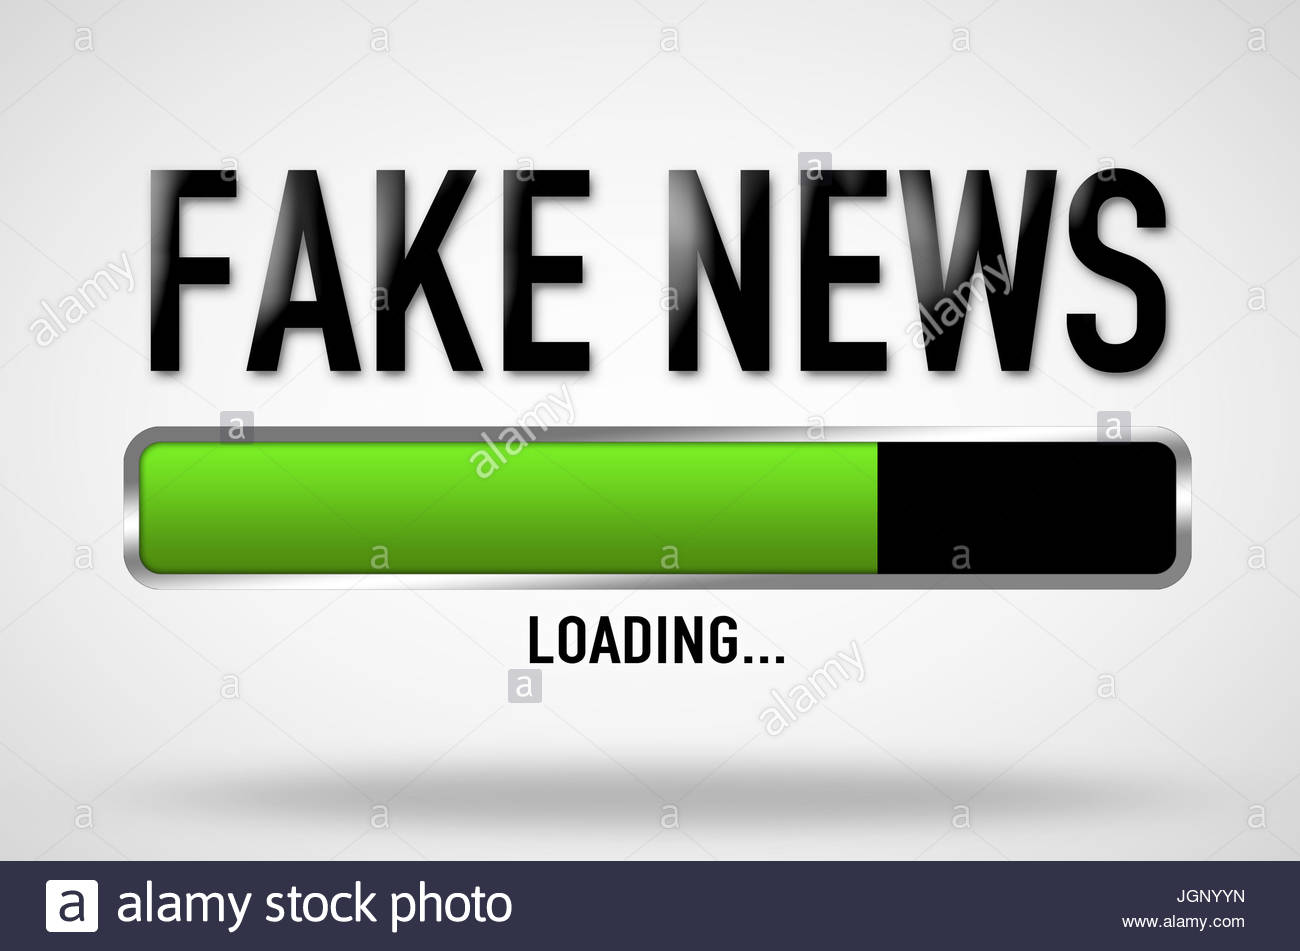 Fake News - loading bar - Stock Image